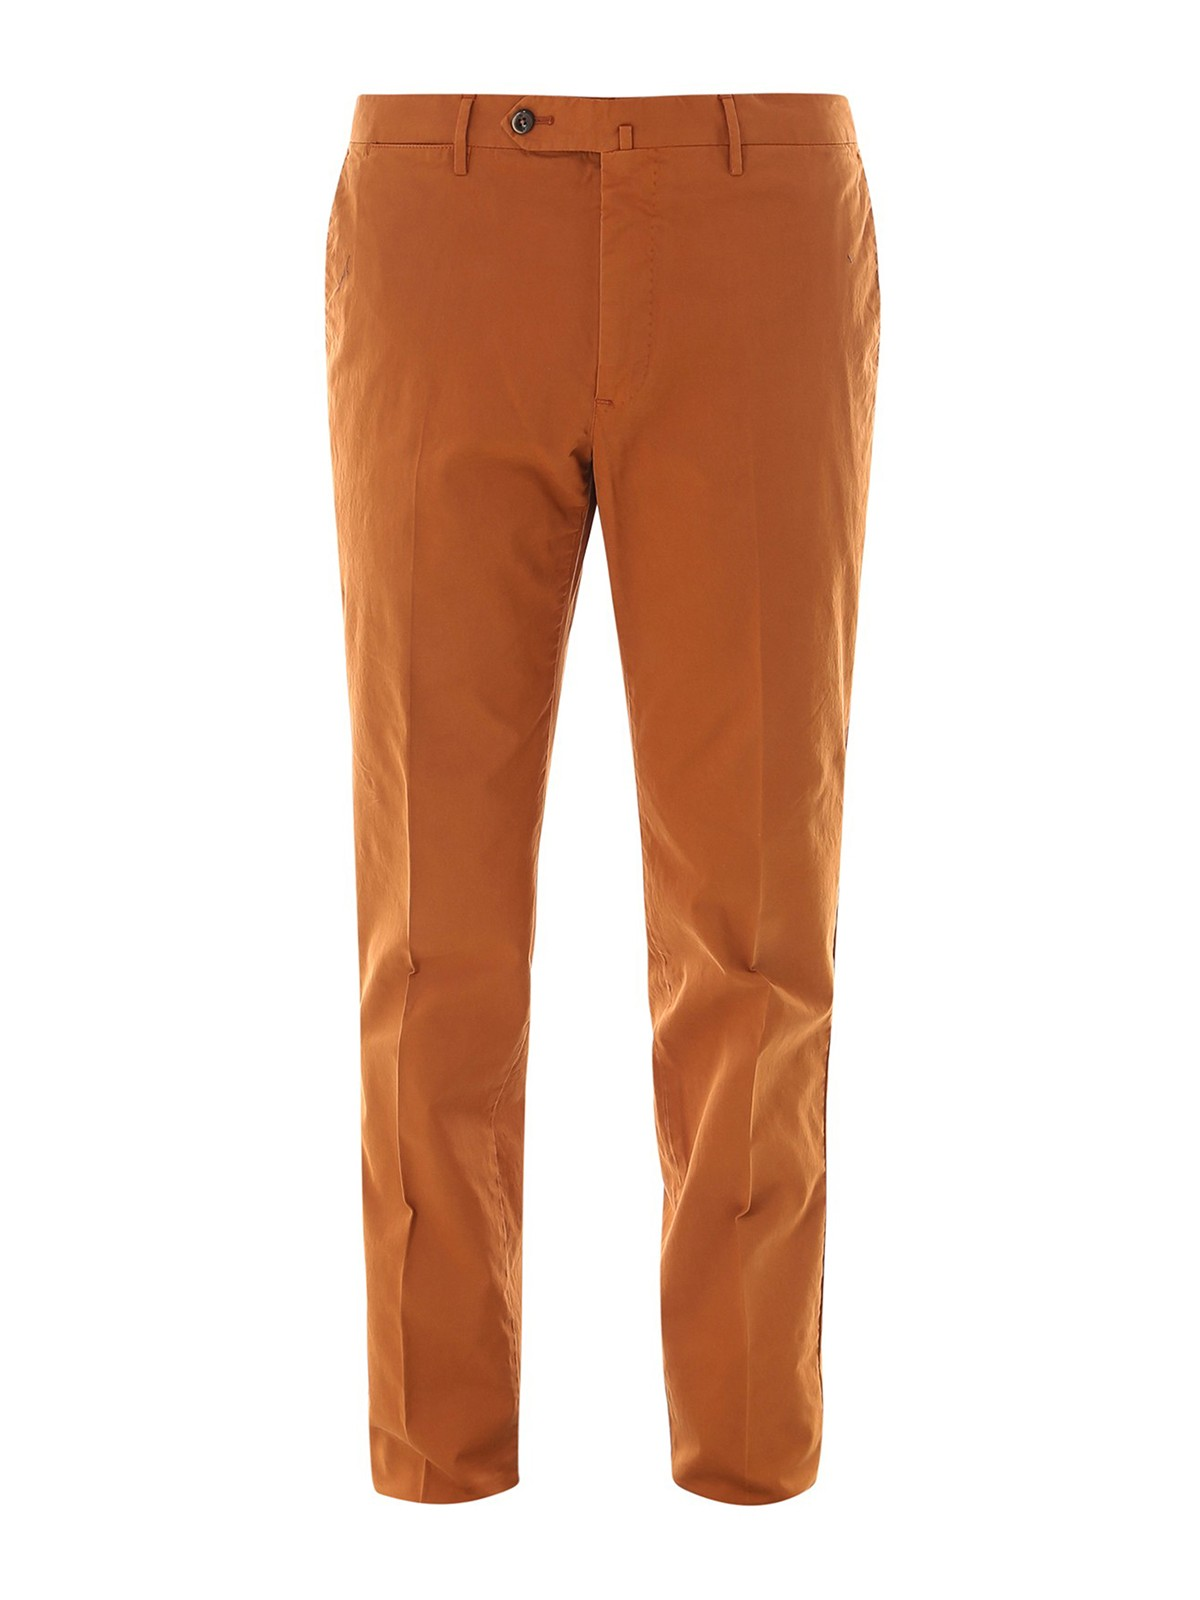 Pt Torino Cottons STRETCH COTTON TROUSERS